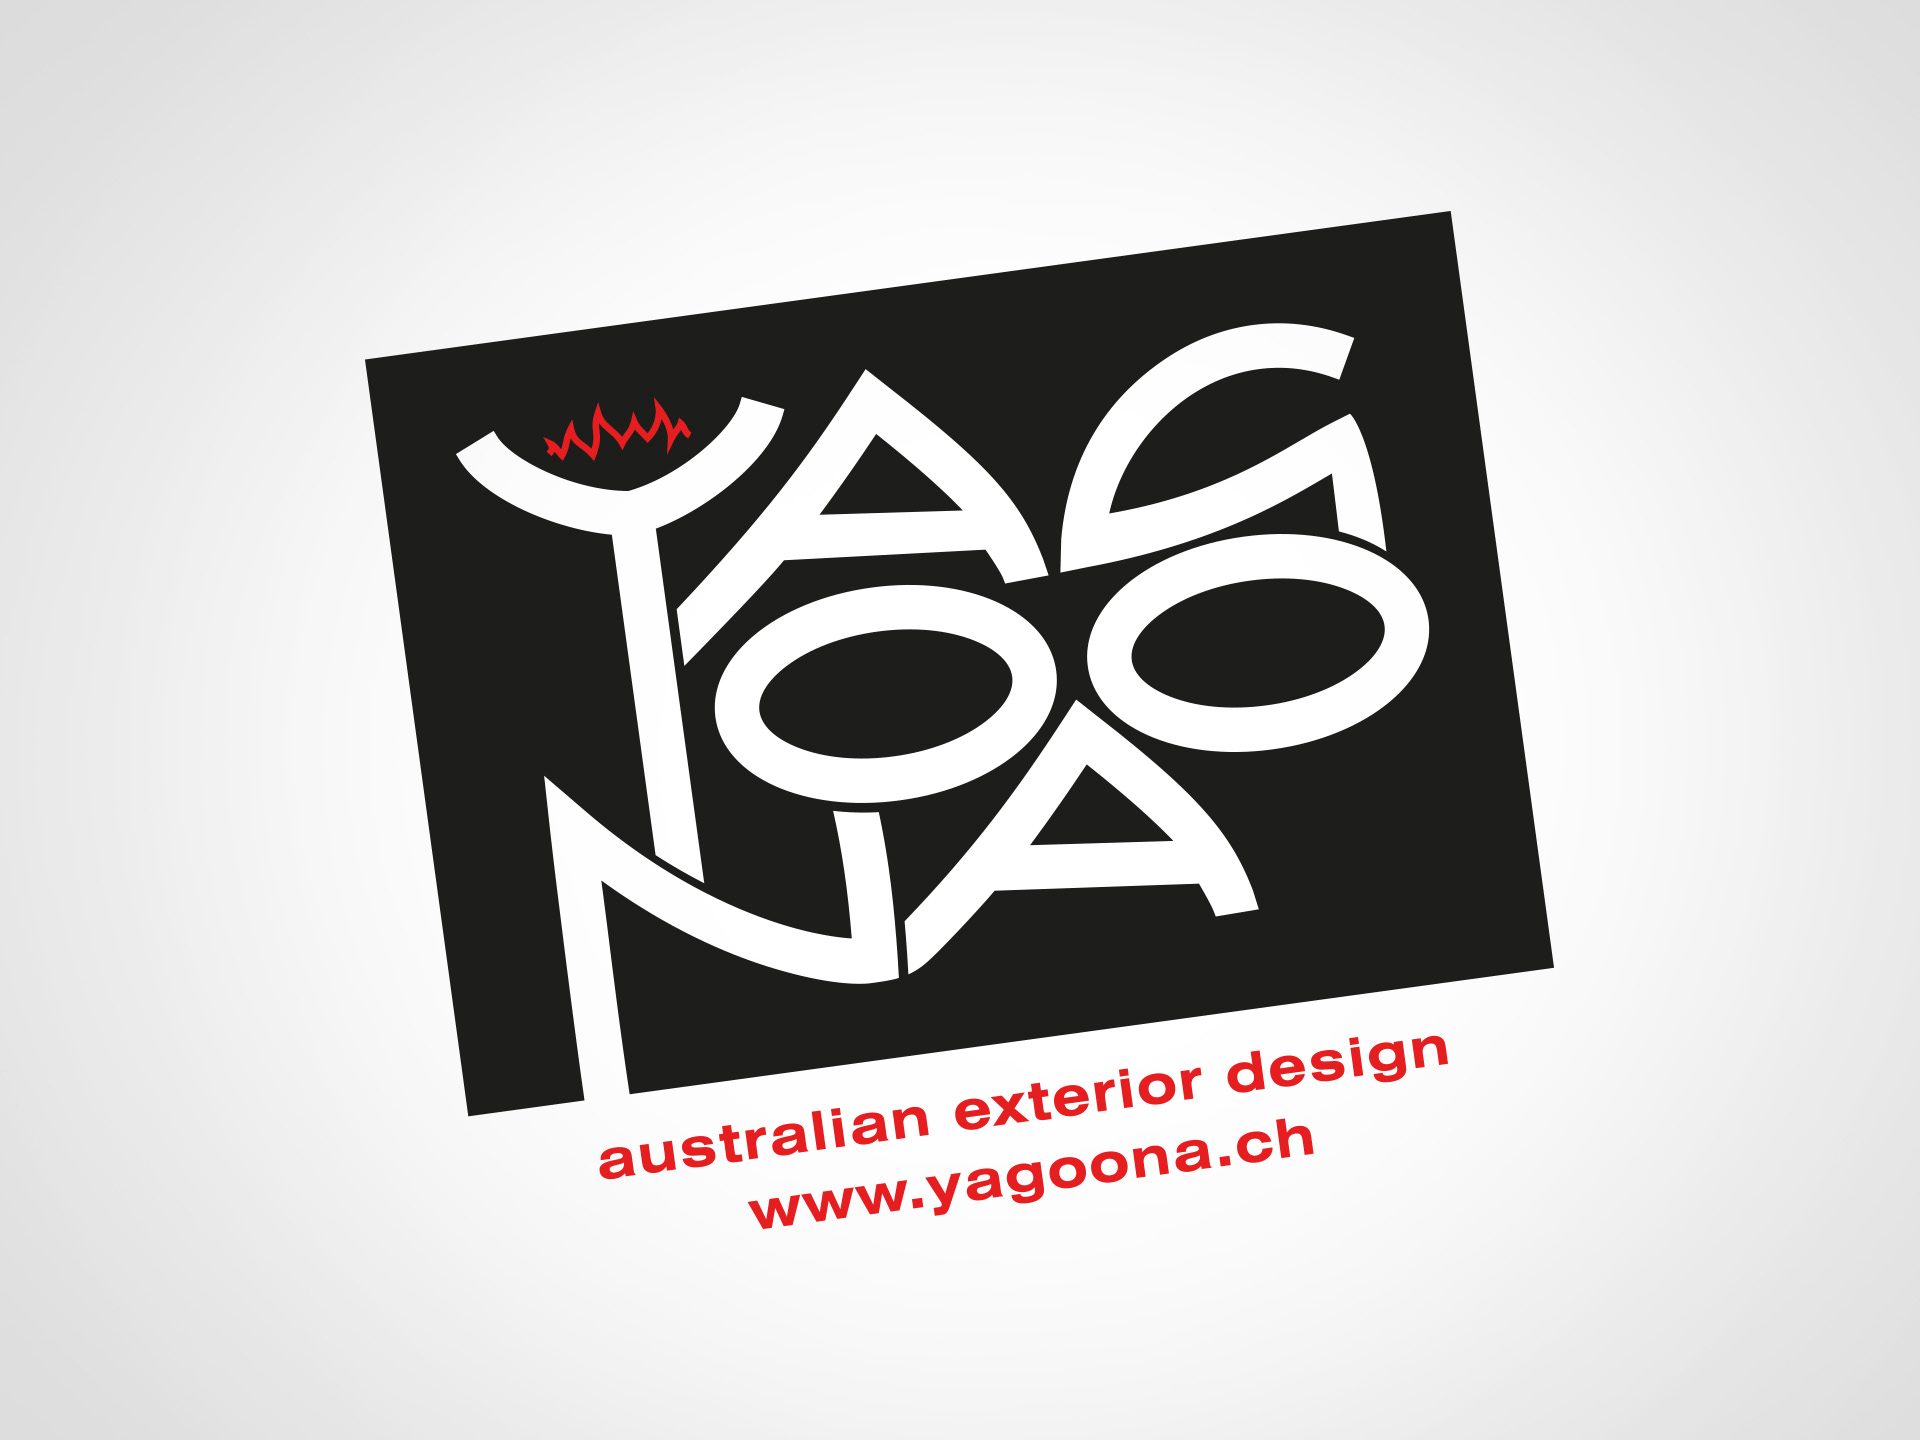 SM Graphic Design Referenzen Logo Visitenkarte Website Corporate Design Yagoona Australian Exterior Design Möbel